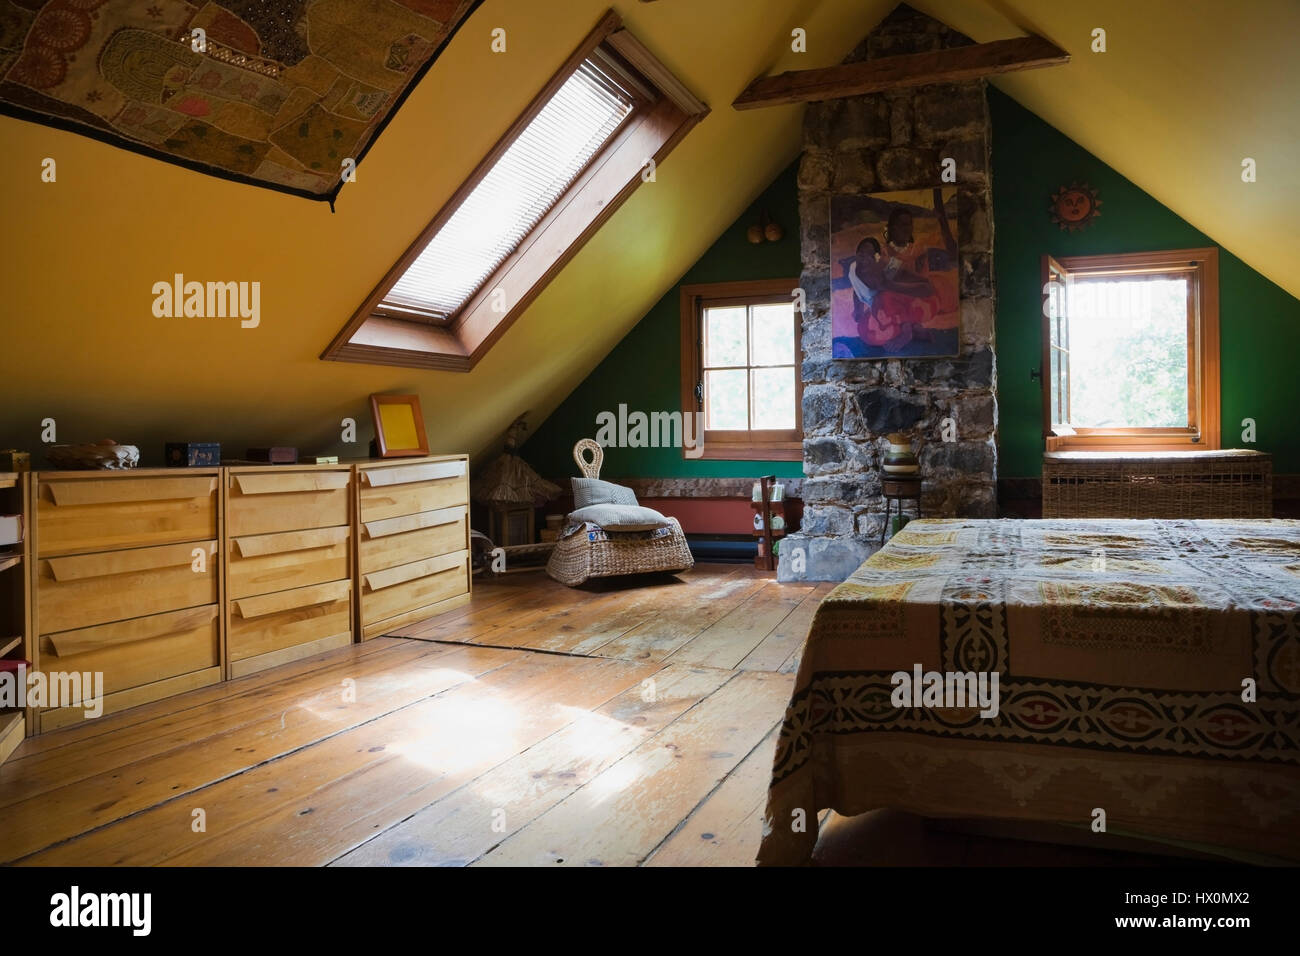 yellow rustic master bedroom with bed and furnishings in 1840